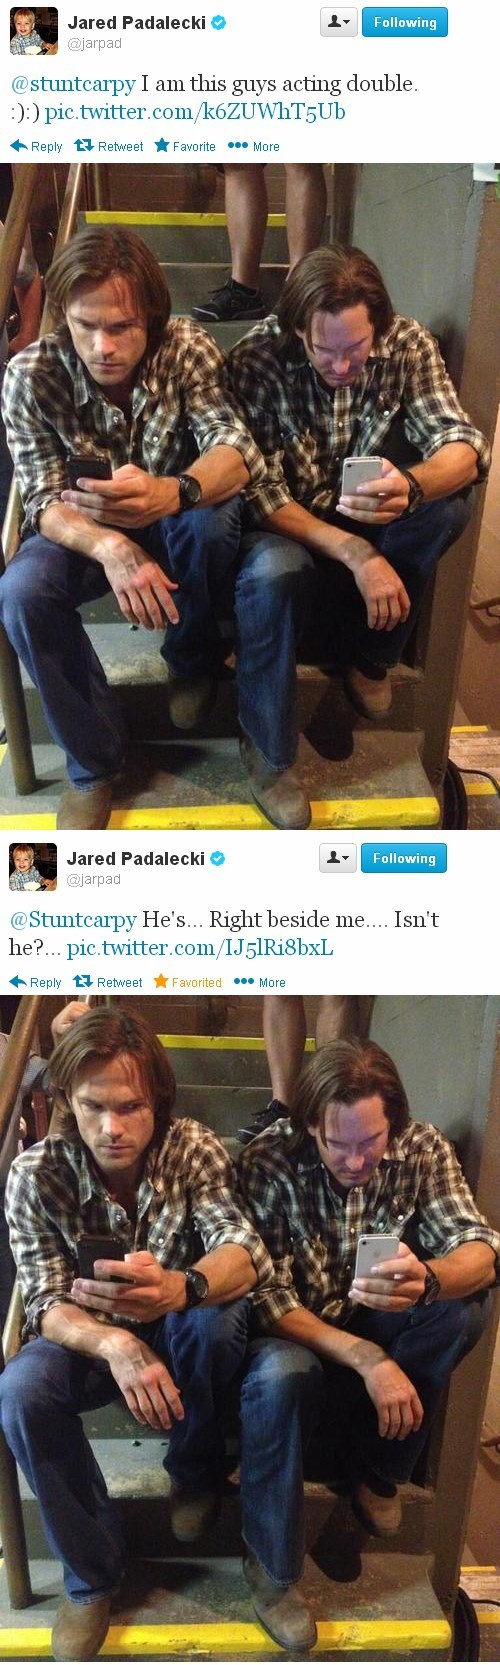 behind the scenes,twitter,stuntman,Supernatural,Jared Padalecki